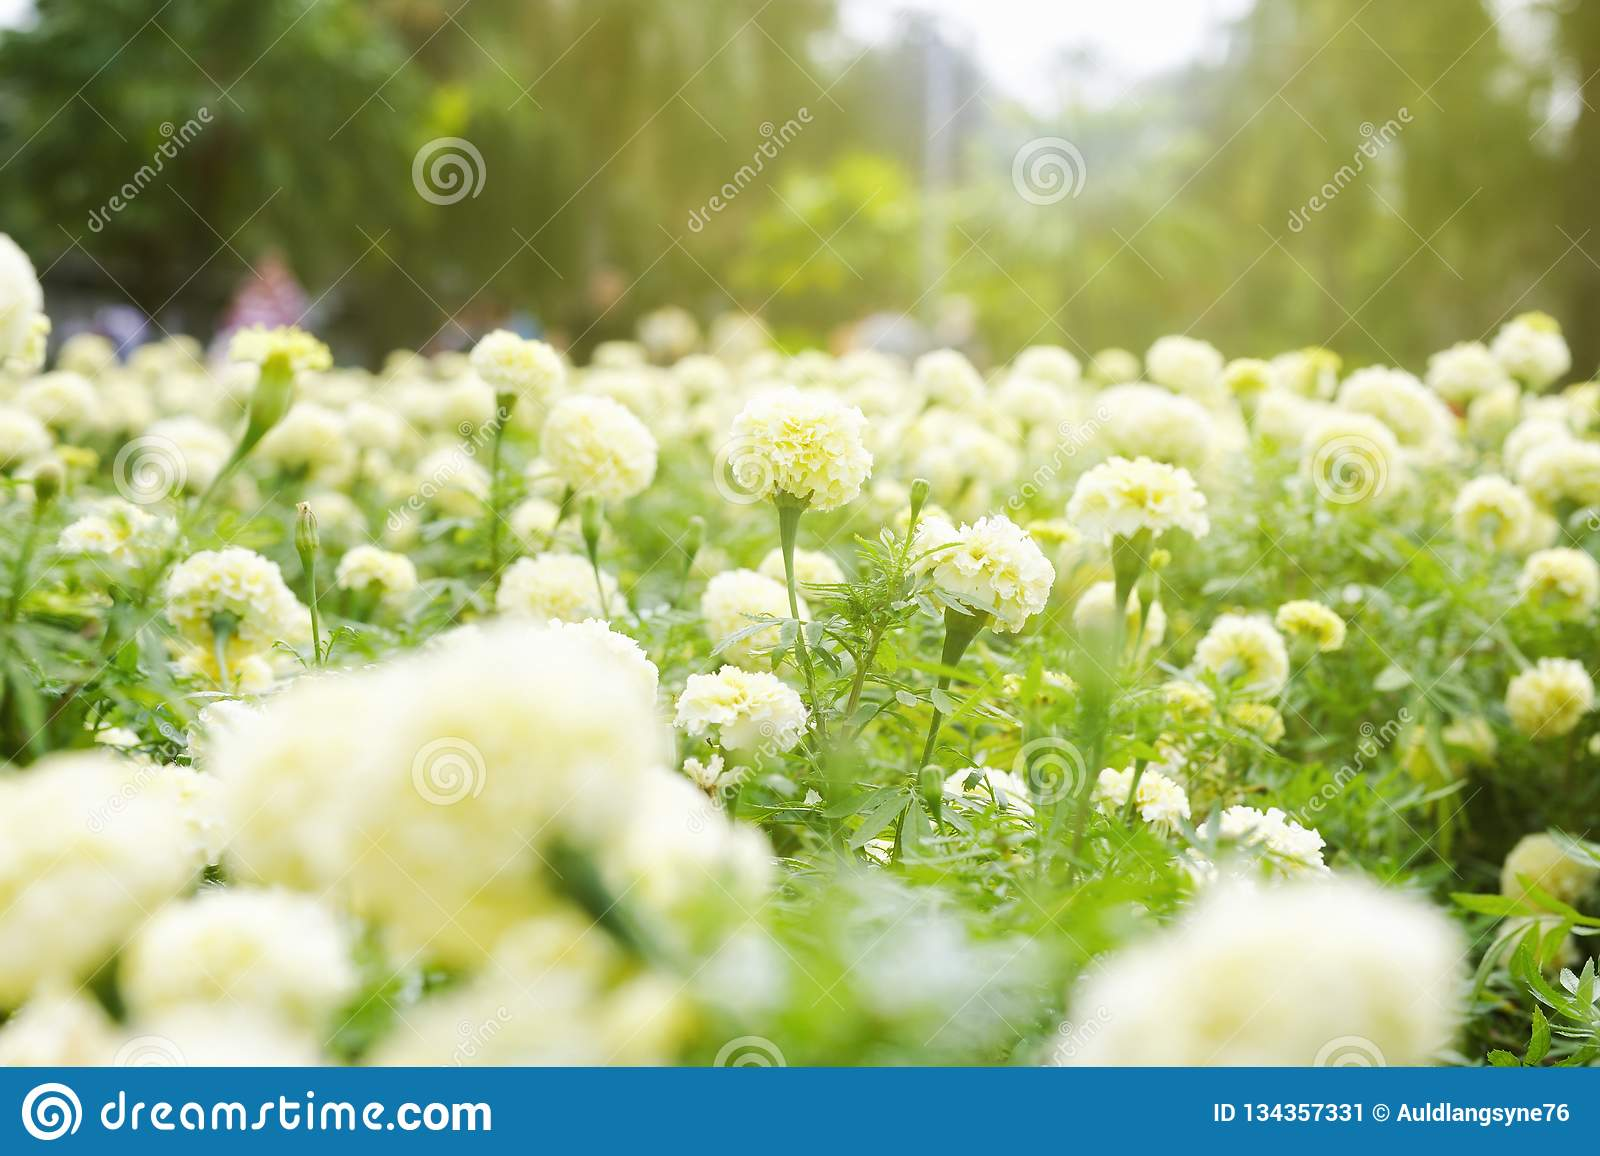 White Marigold Garden In Sunrise Stock Image Image Of Botany